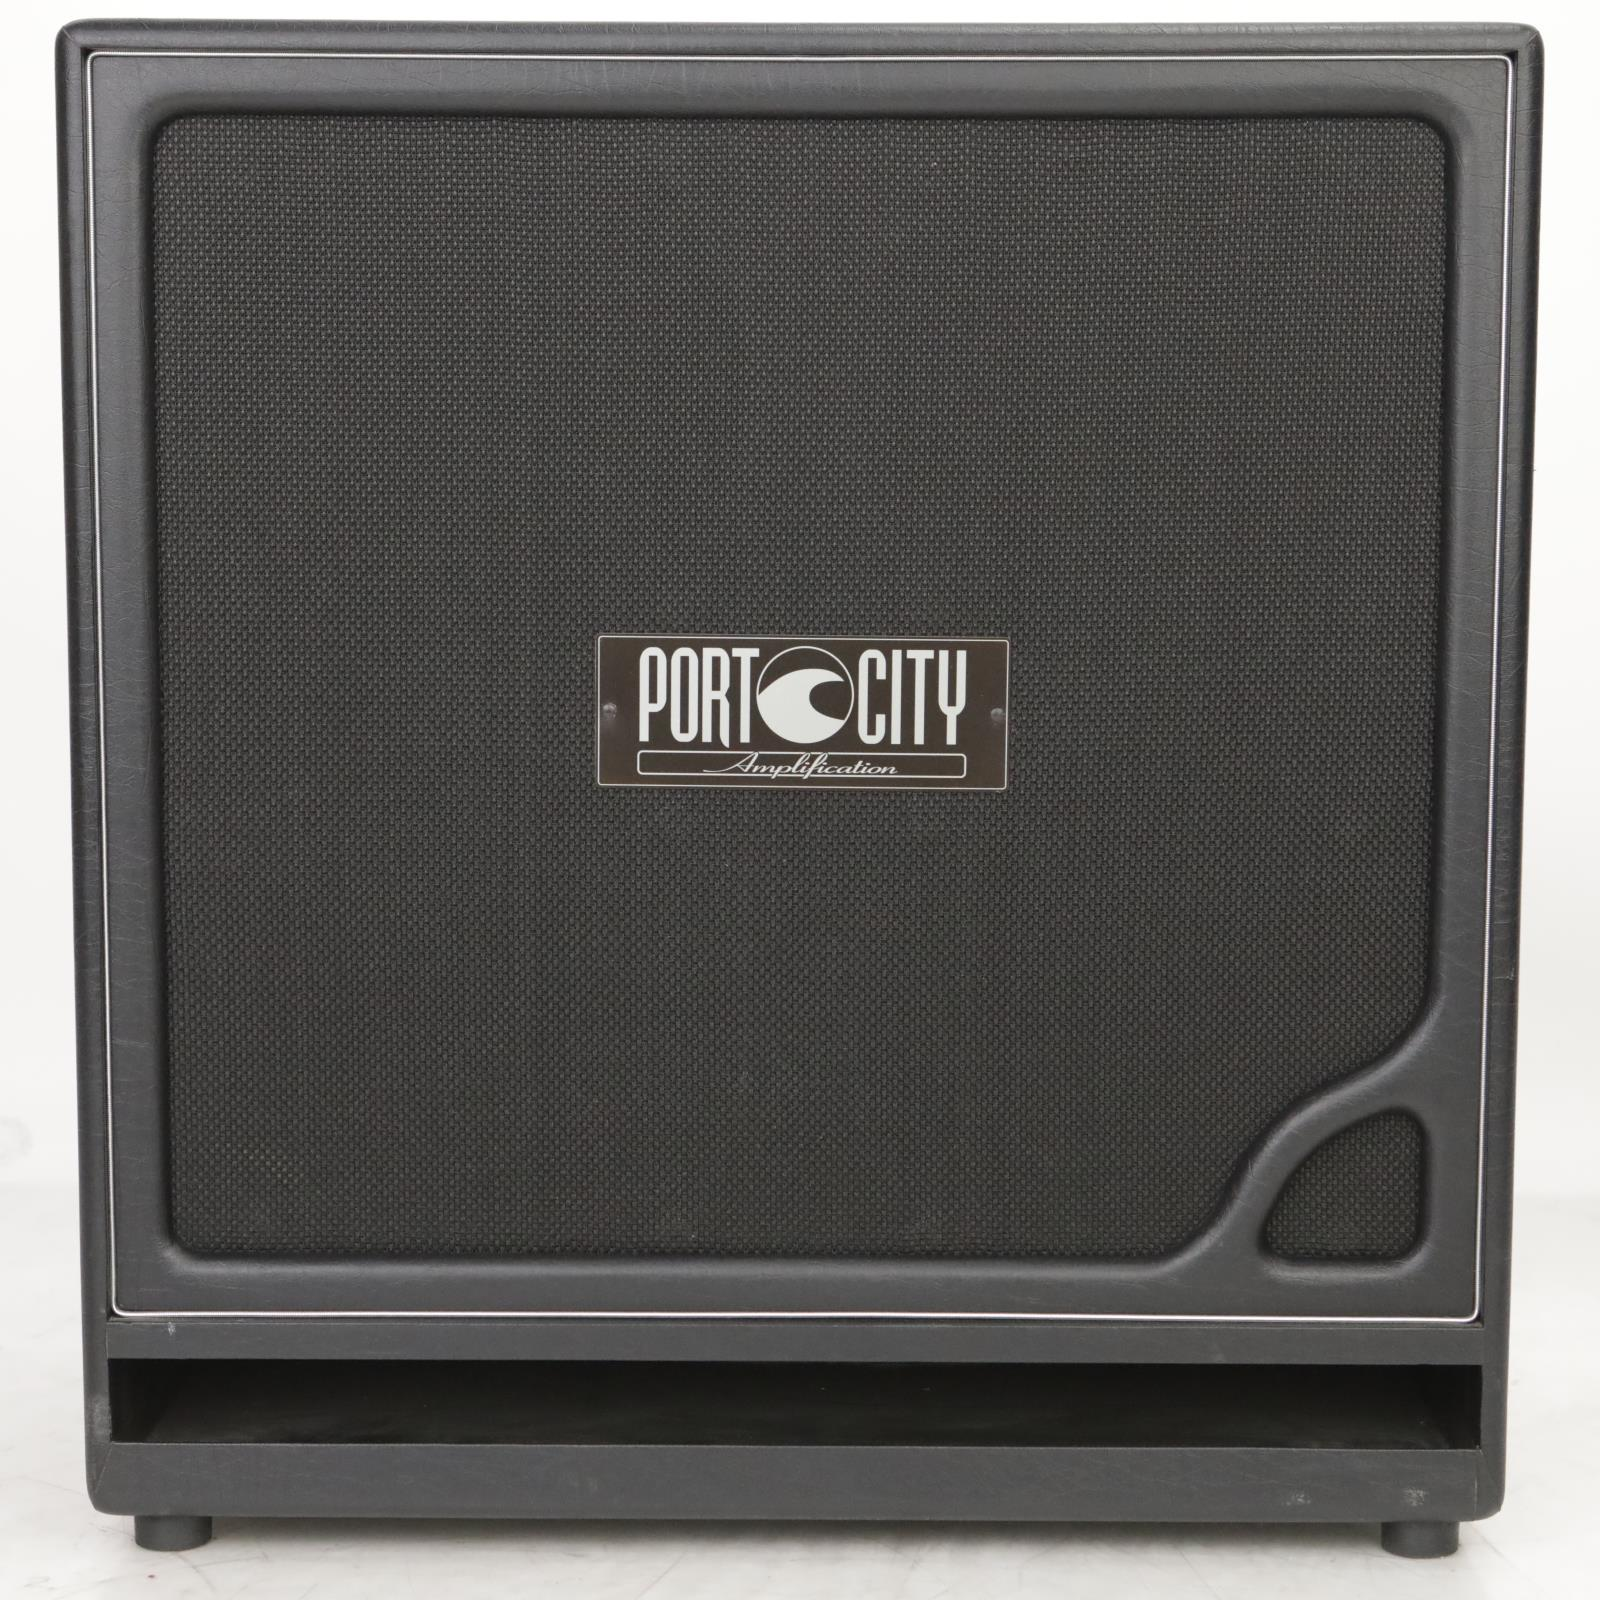 "Port City Amps 4x12"" Wave Cab Guitar Amplifier Speaker Cabinet #37814"